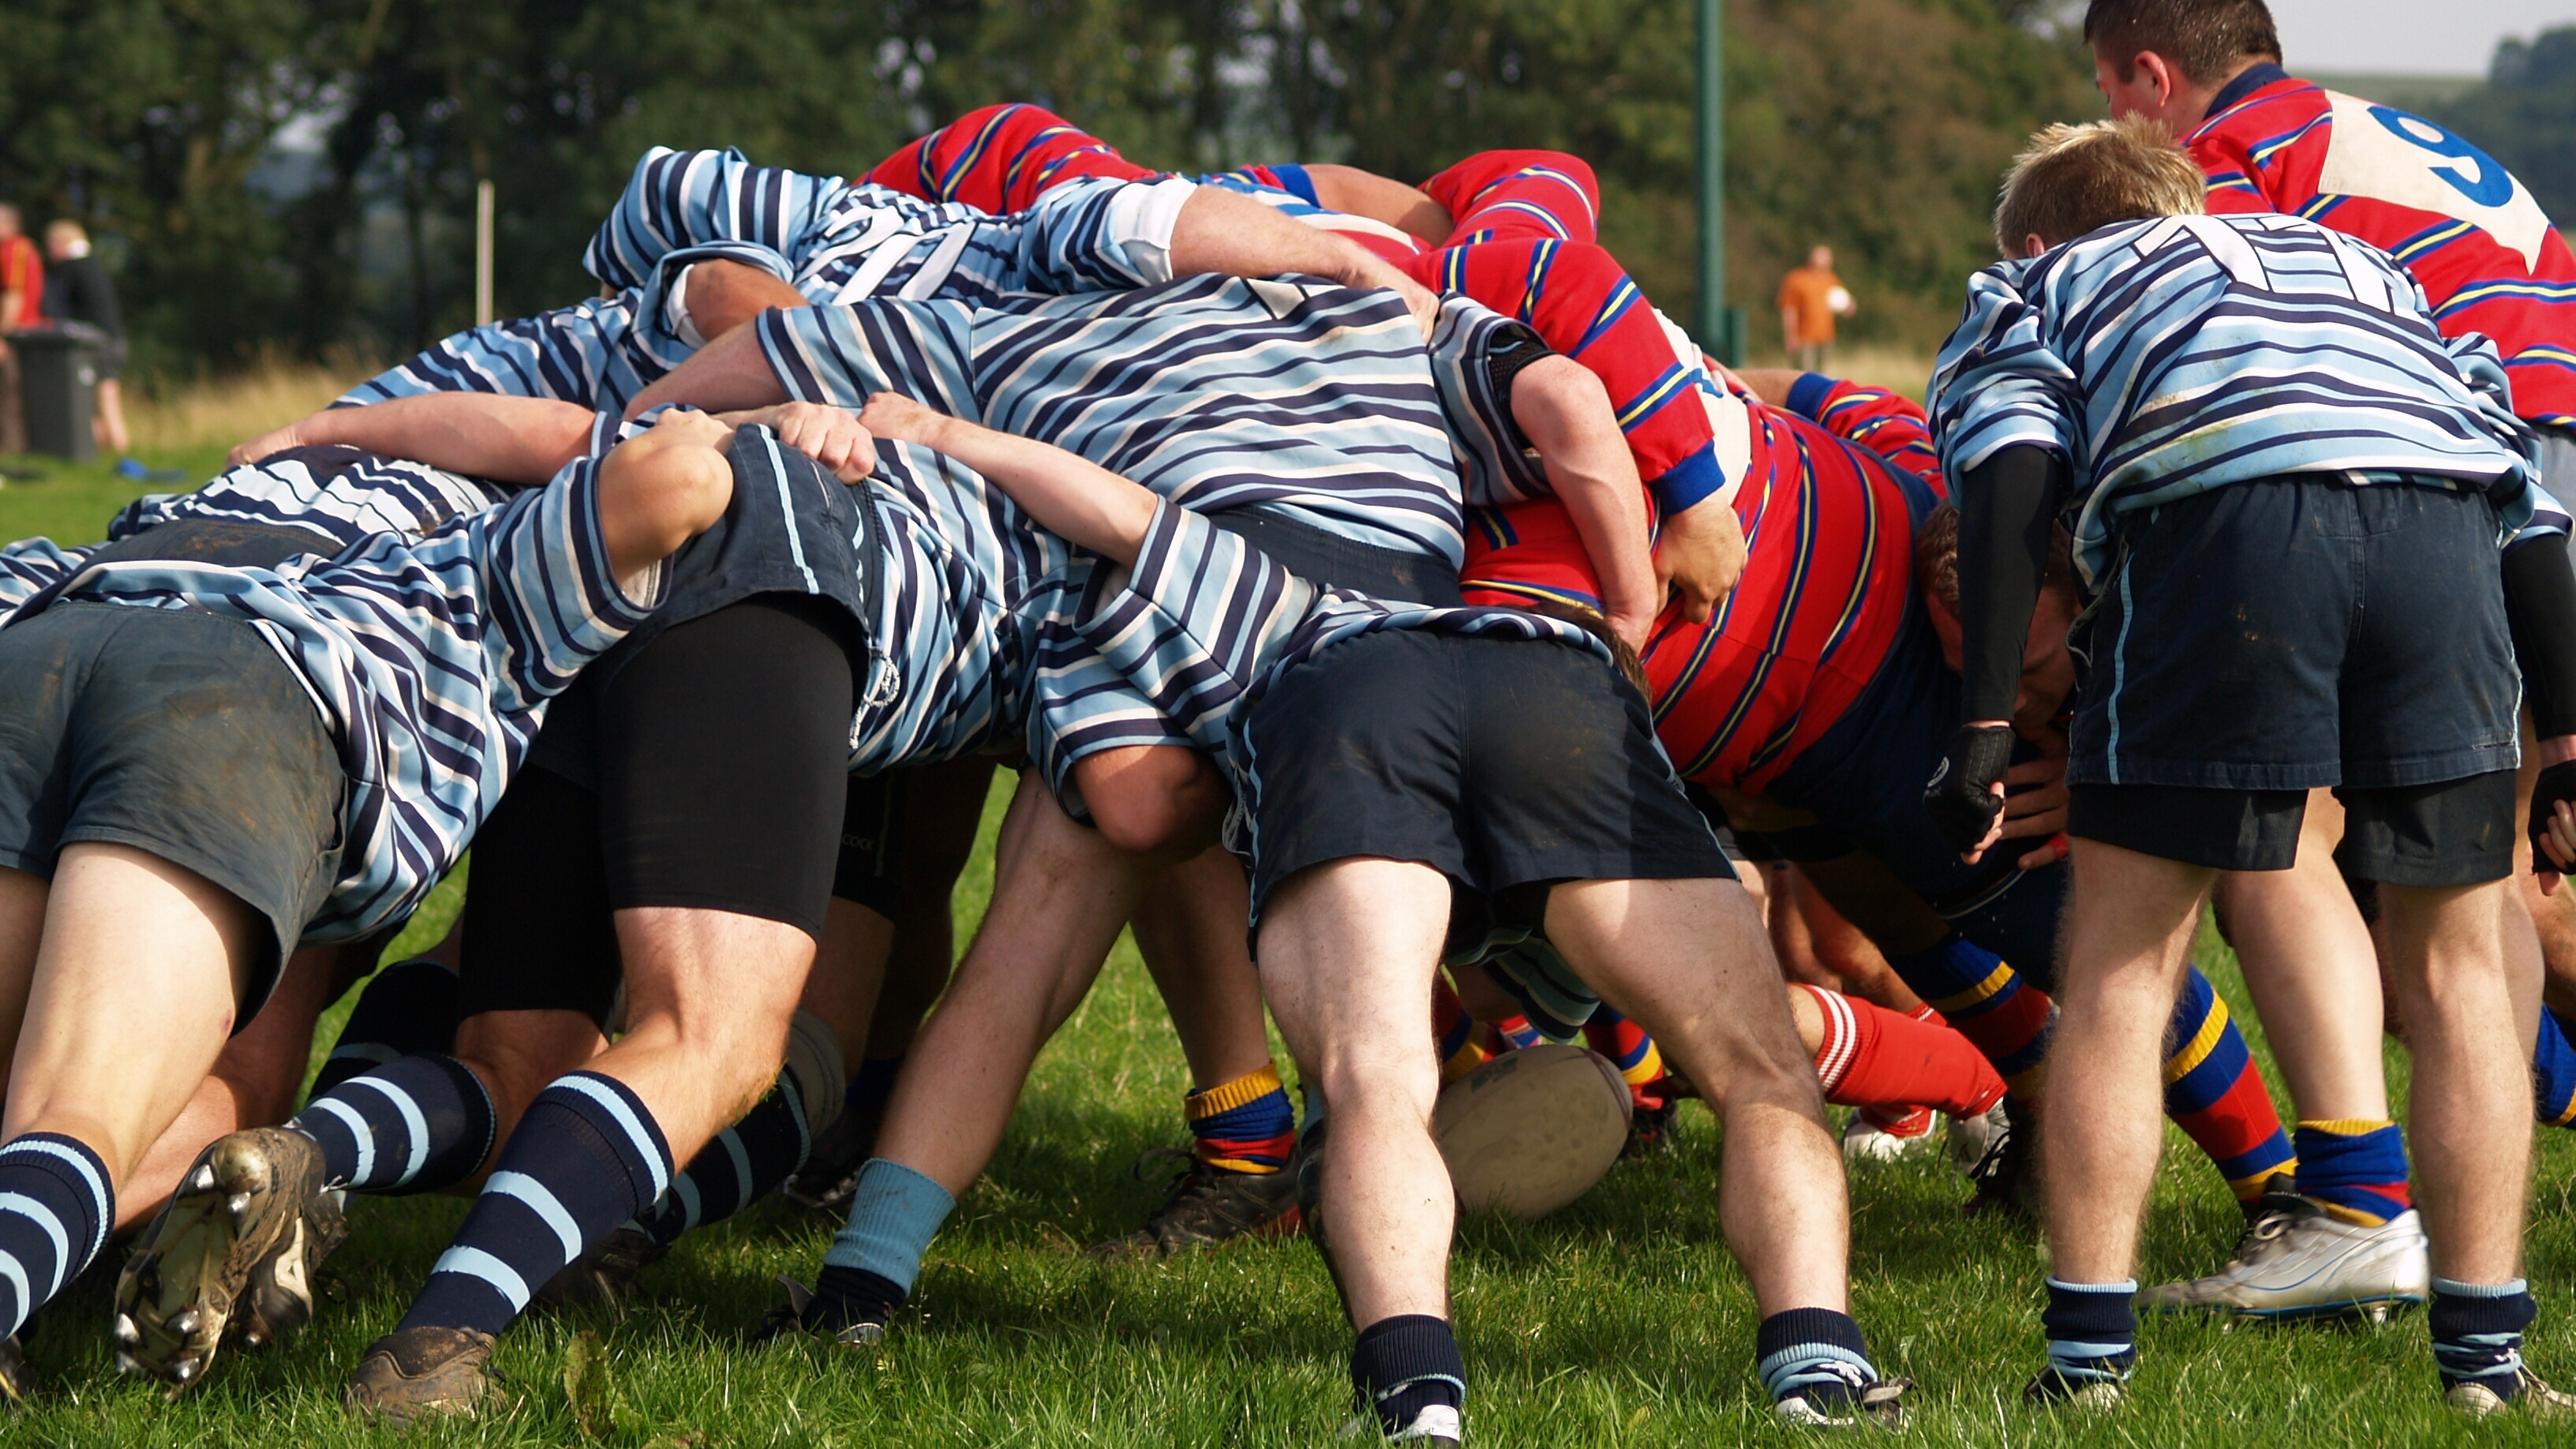 Rugby players push against each other in the scrum